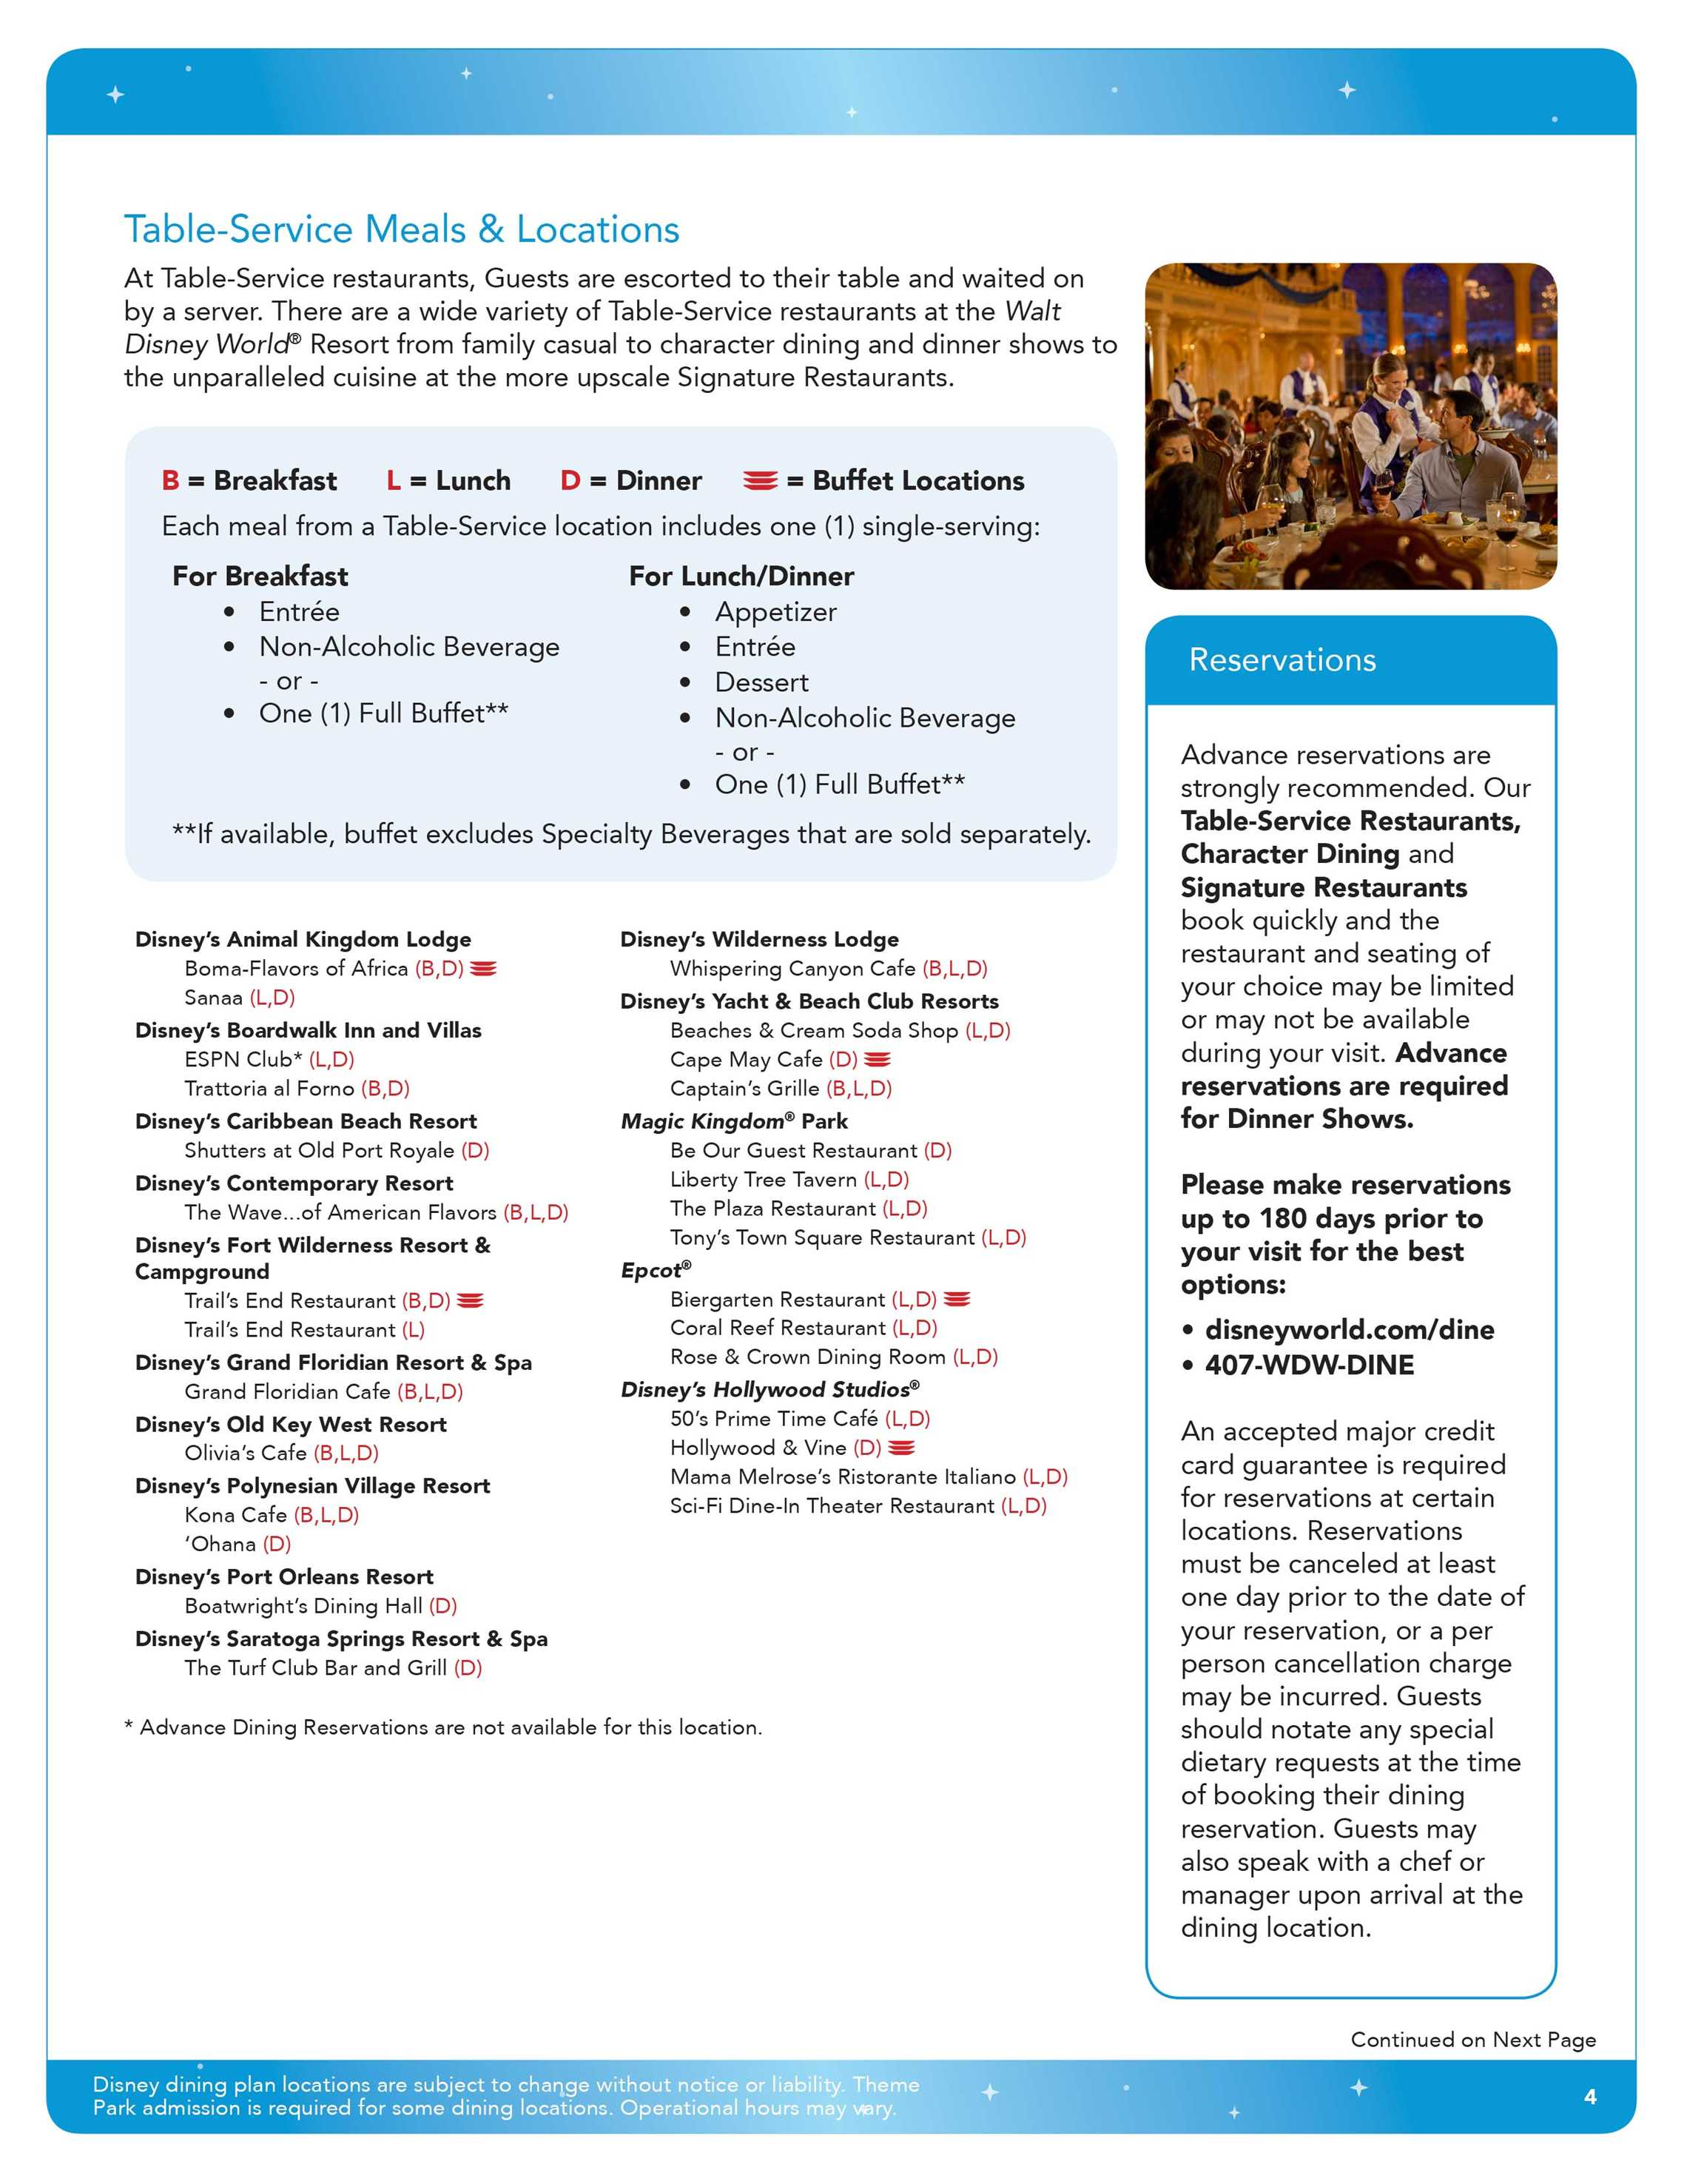 2016 Disney Deluxe Dining Plan brochure - Page 4